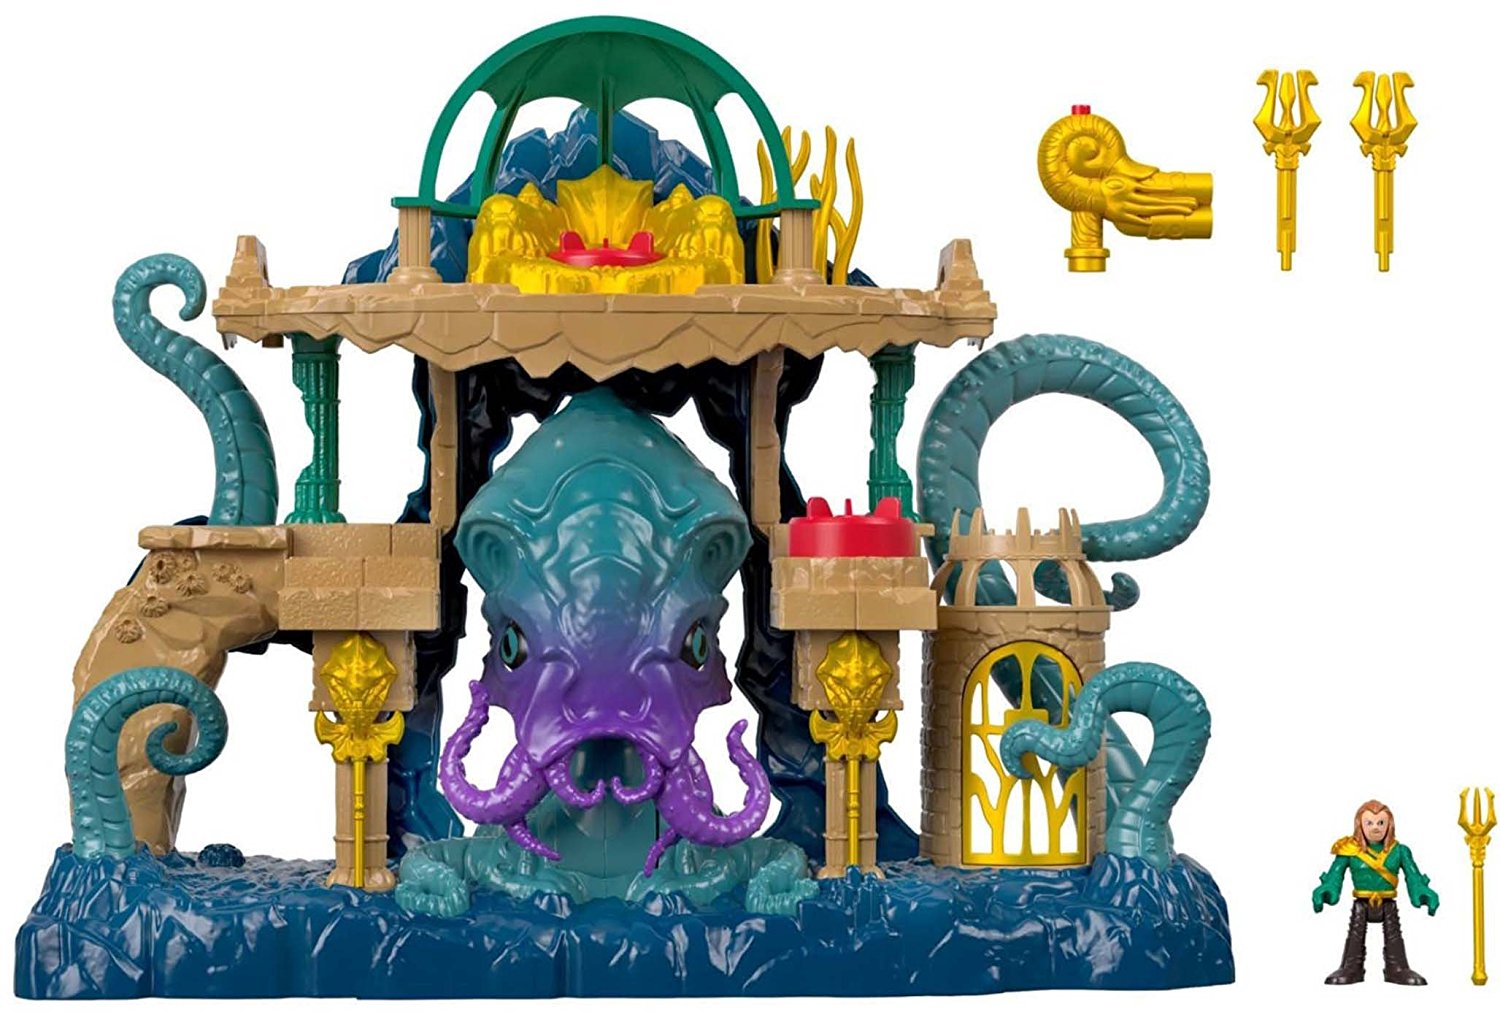 Fisher Price Imaginext DC Super Friends Aquaman Playset In-Stock On Amazon June 11th